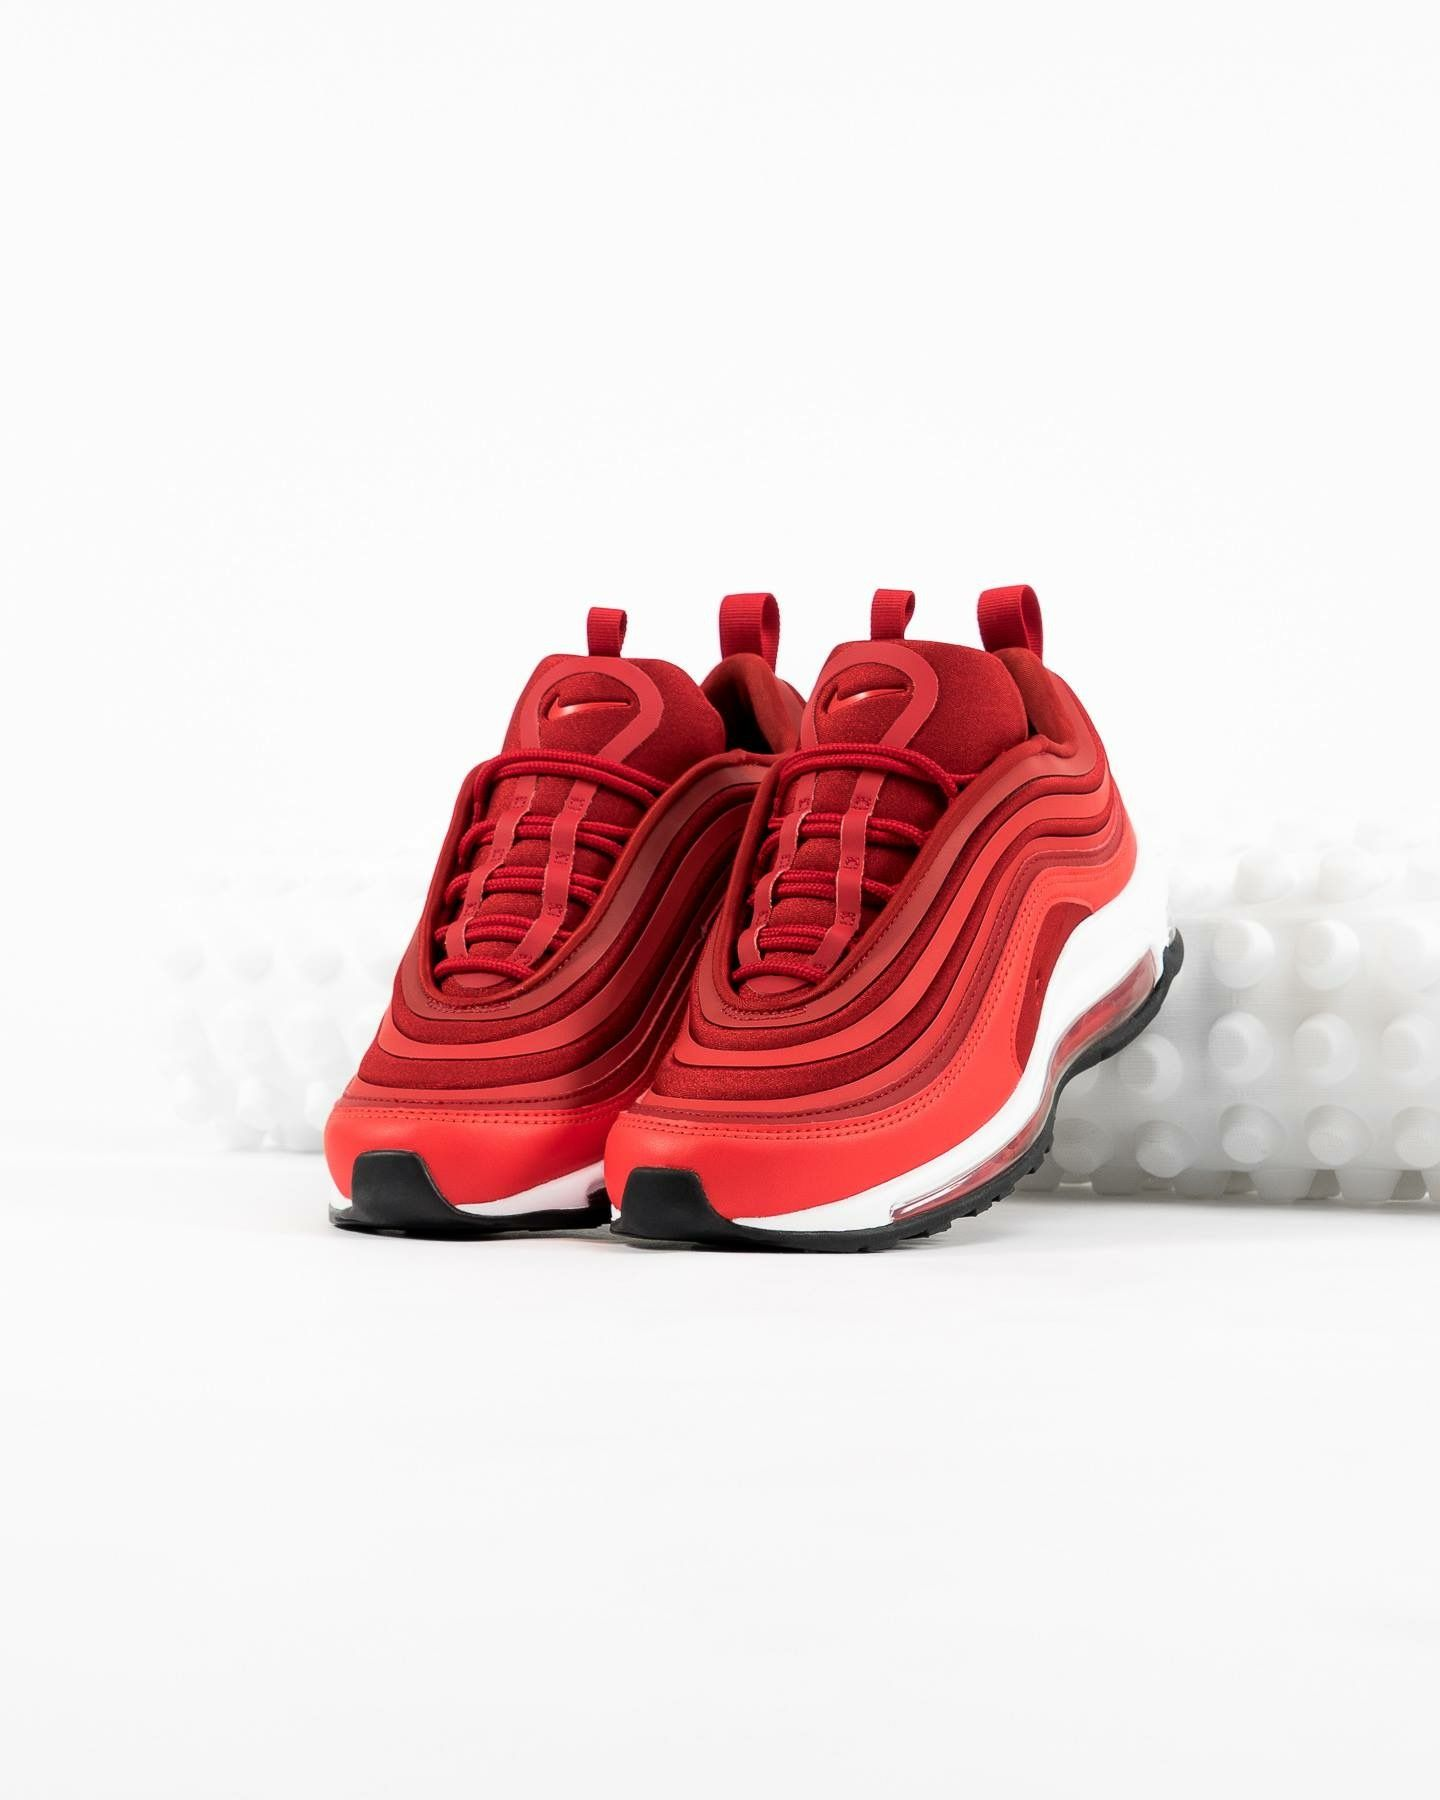 Lilshawtybad Red Nike Shoes Nike Air Max 97 Nike Air Max